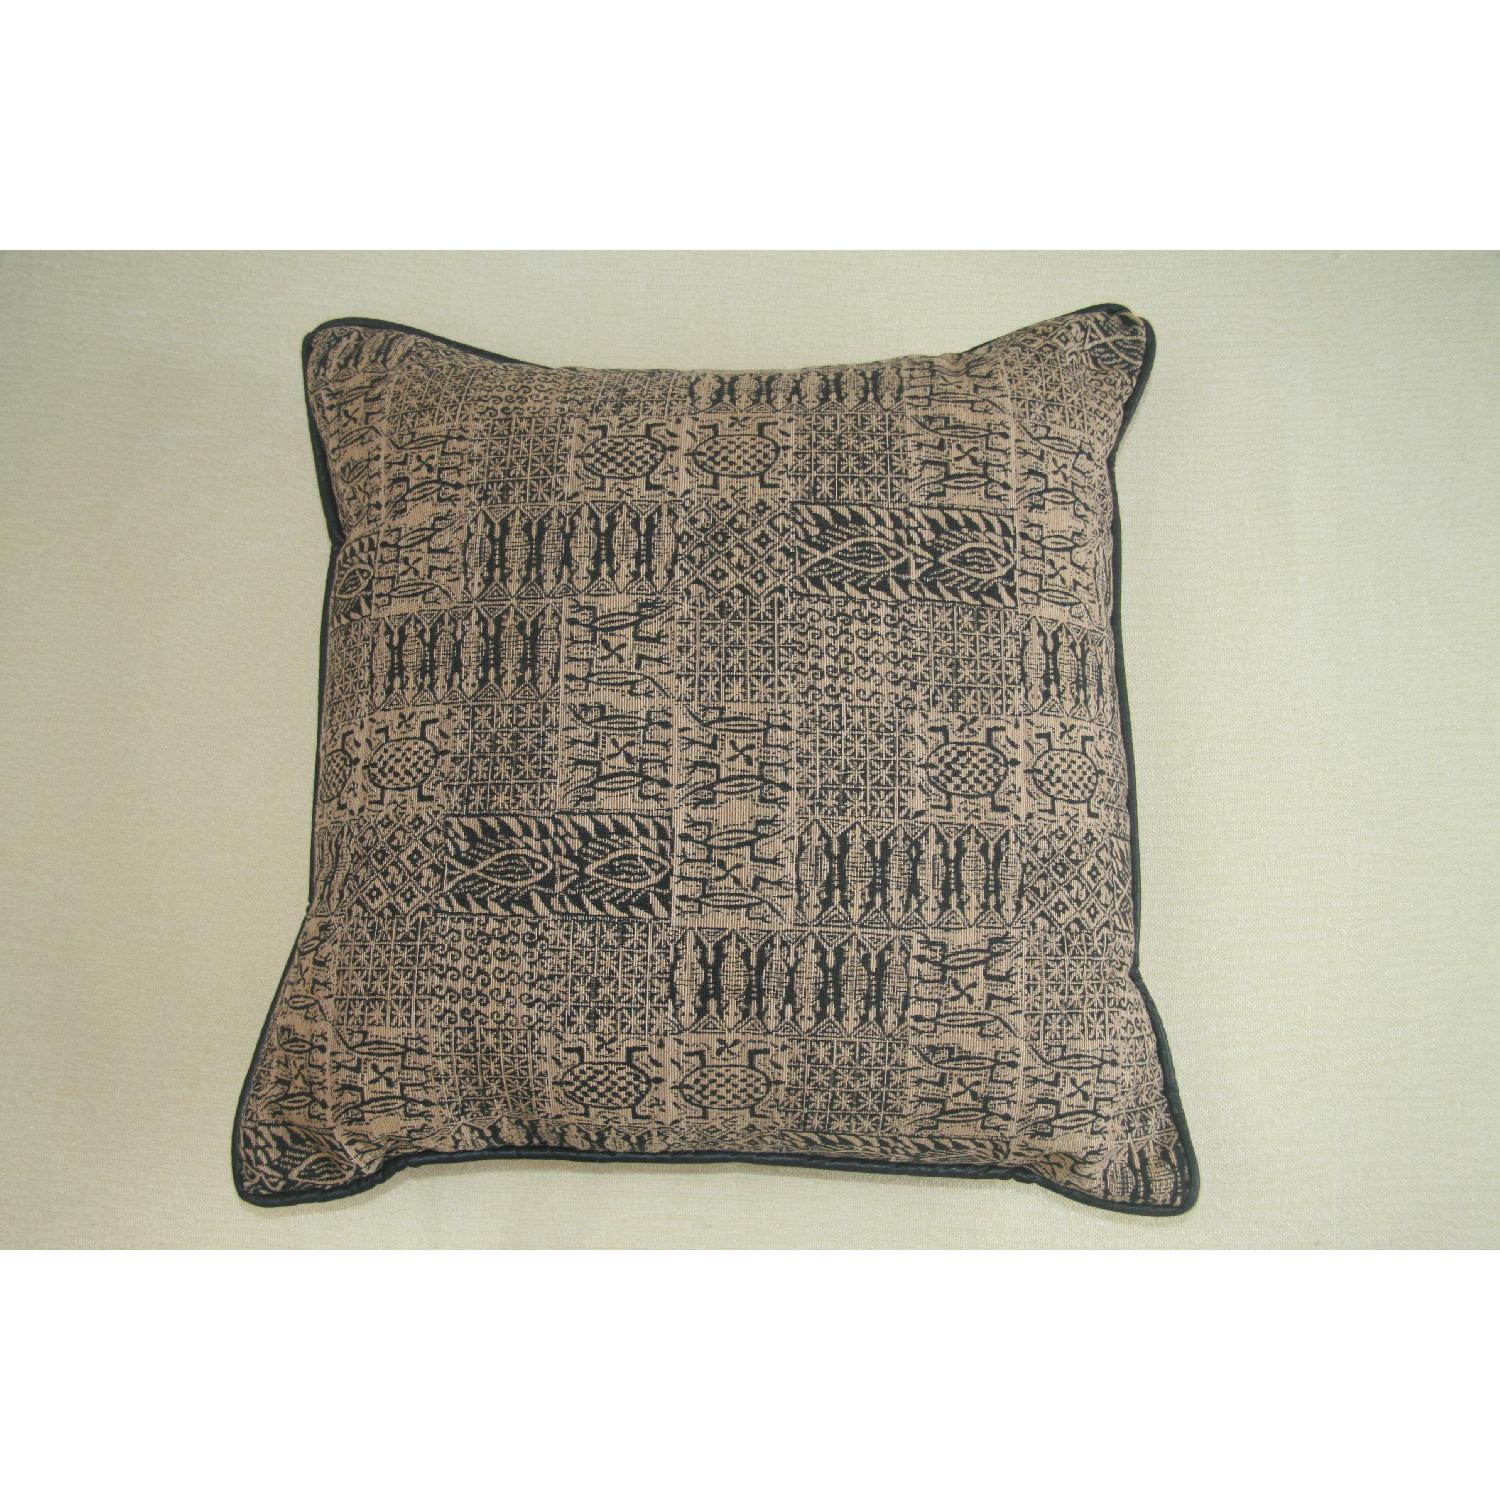 Large Pillows In Black & Gold Print - 2 Available - image-2